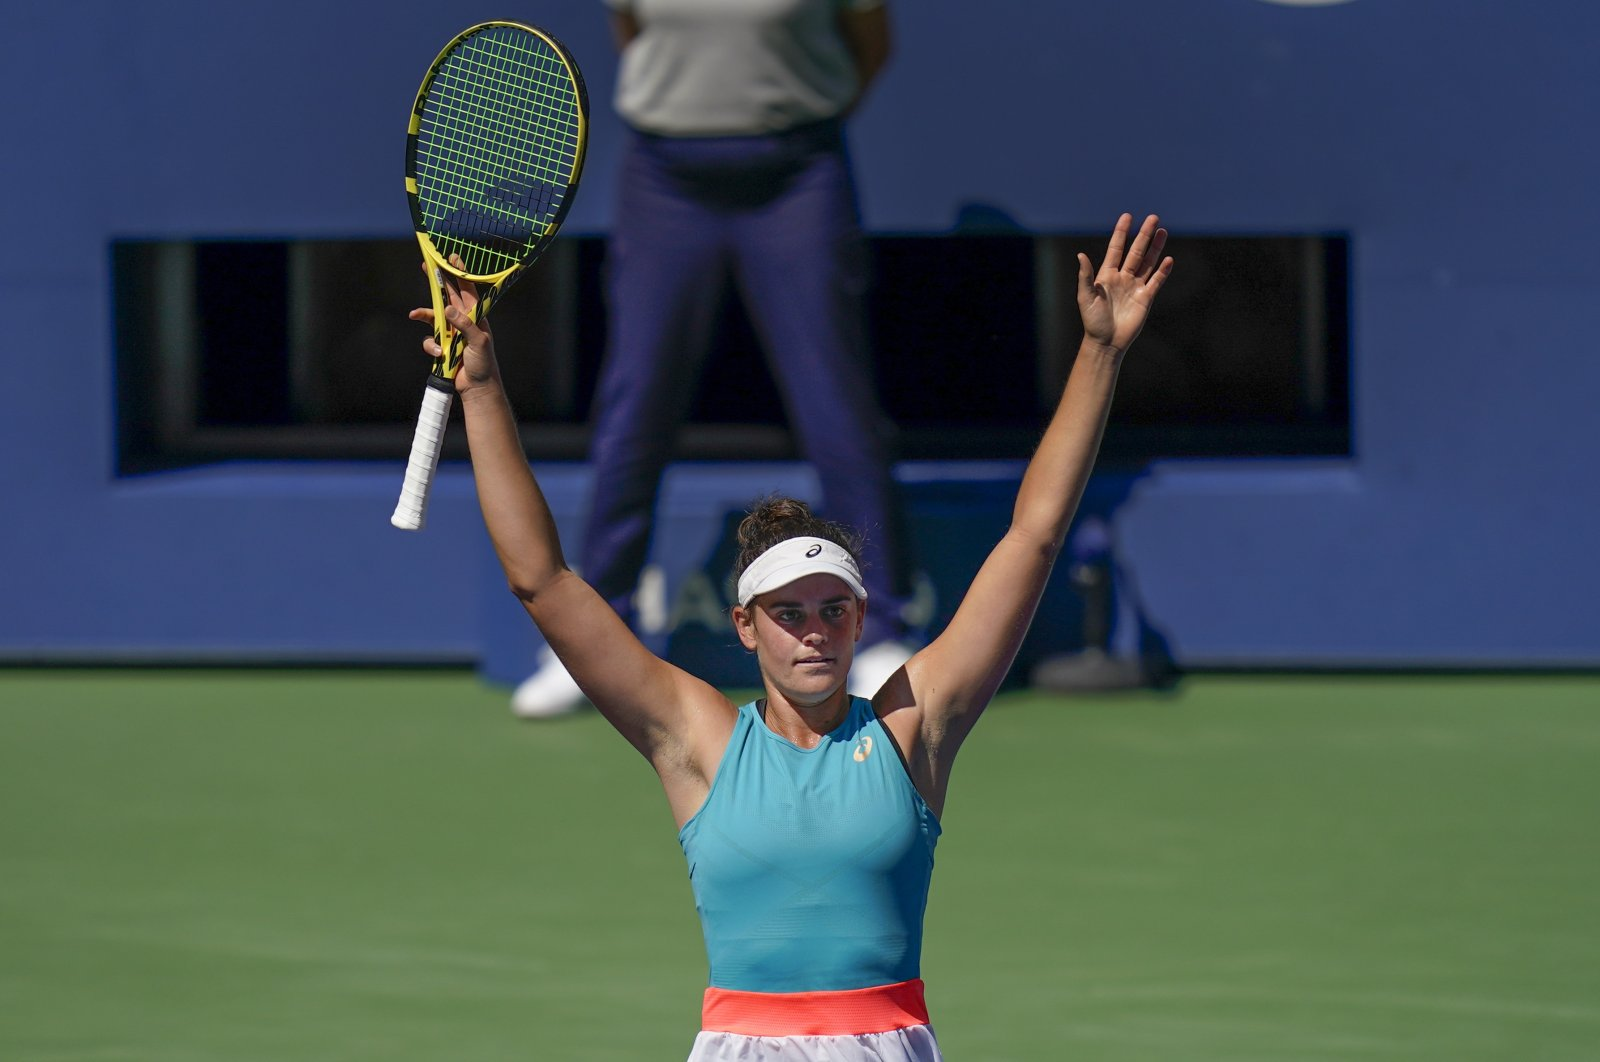 United States' Jennifer Brady reacts after defeating Kazakhstan's Yulia Putintseva during the US Open quarterfinals, in New York, Sept. 8, 2020. (AP Photo)